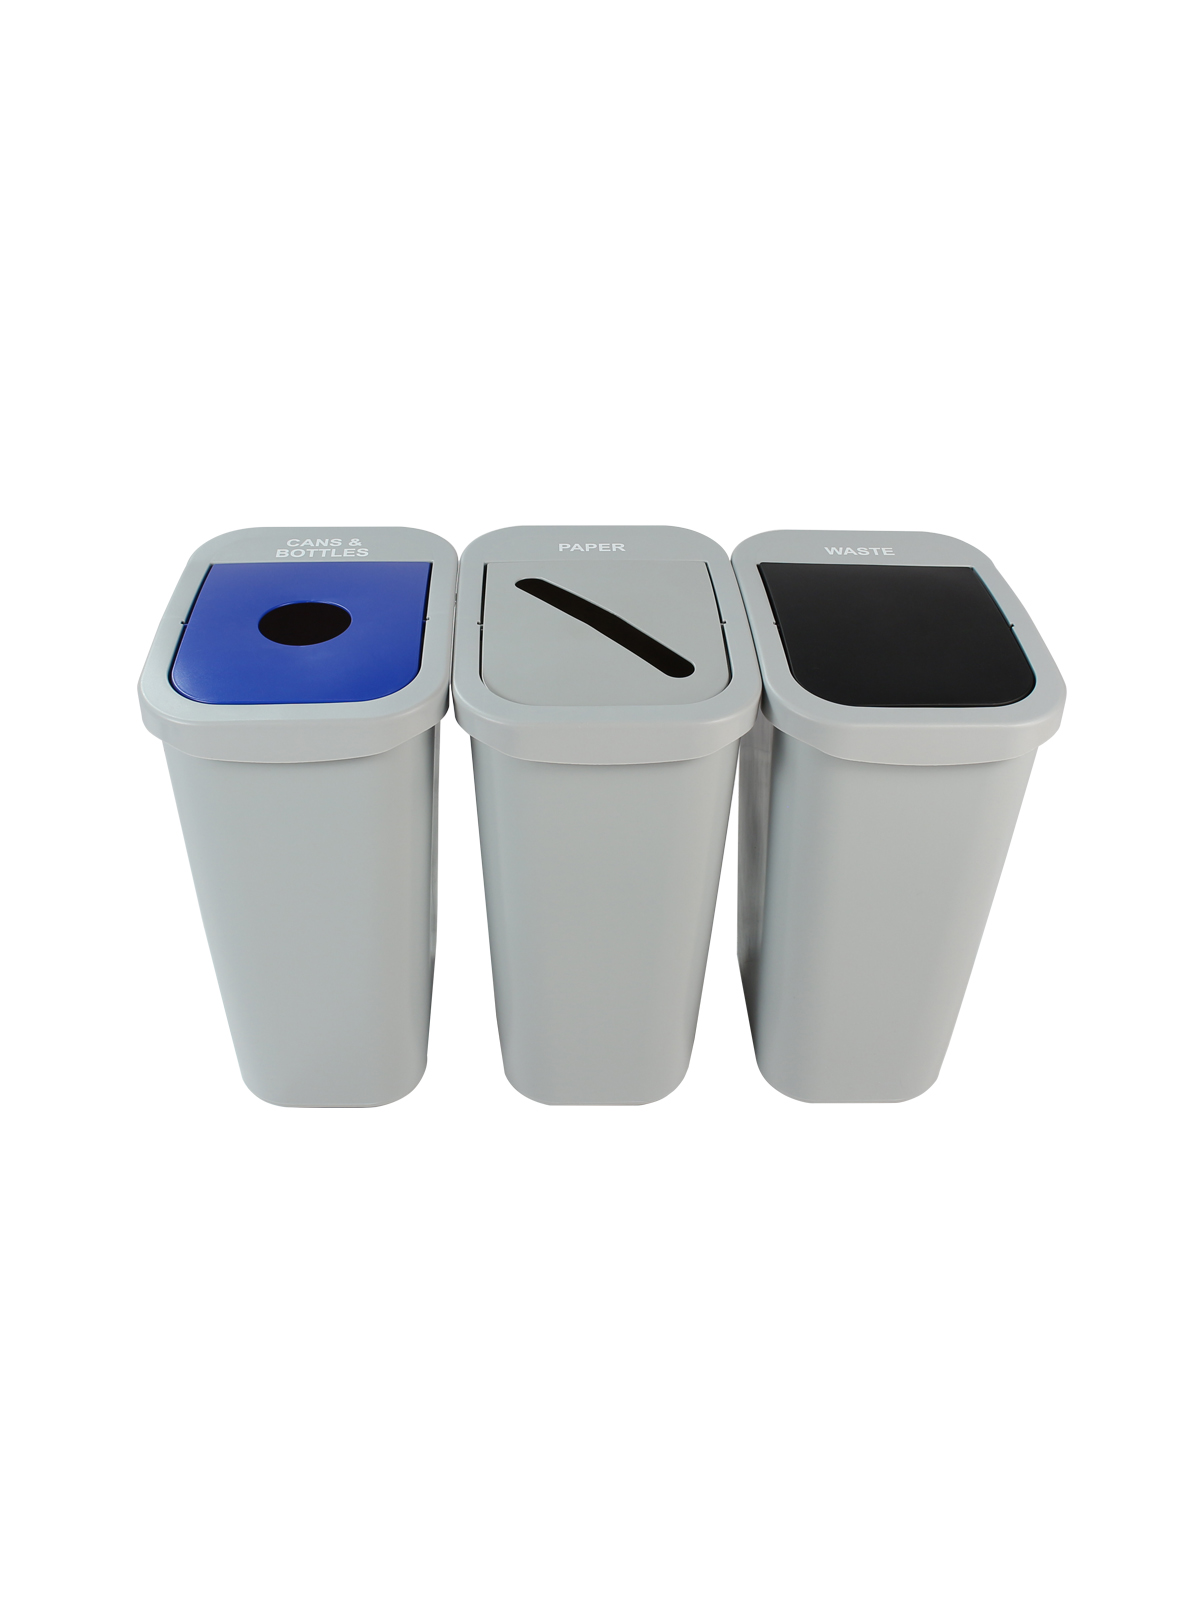 BILLI BOX - TRIPLE 10 G - CIRCLE | SLOT | SWING - GREY | BLUE | GREY | BLACK - CANS & BOTTLES | PAPER | WASTE